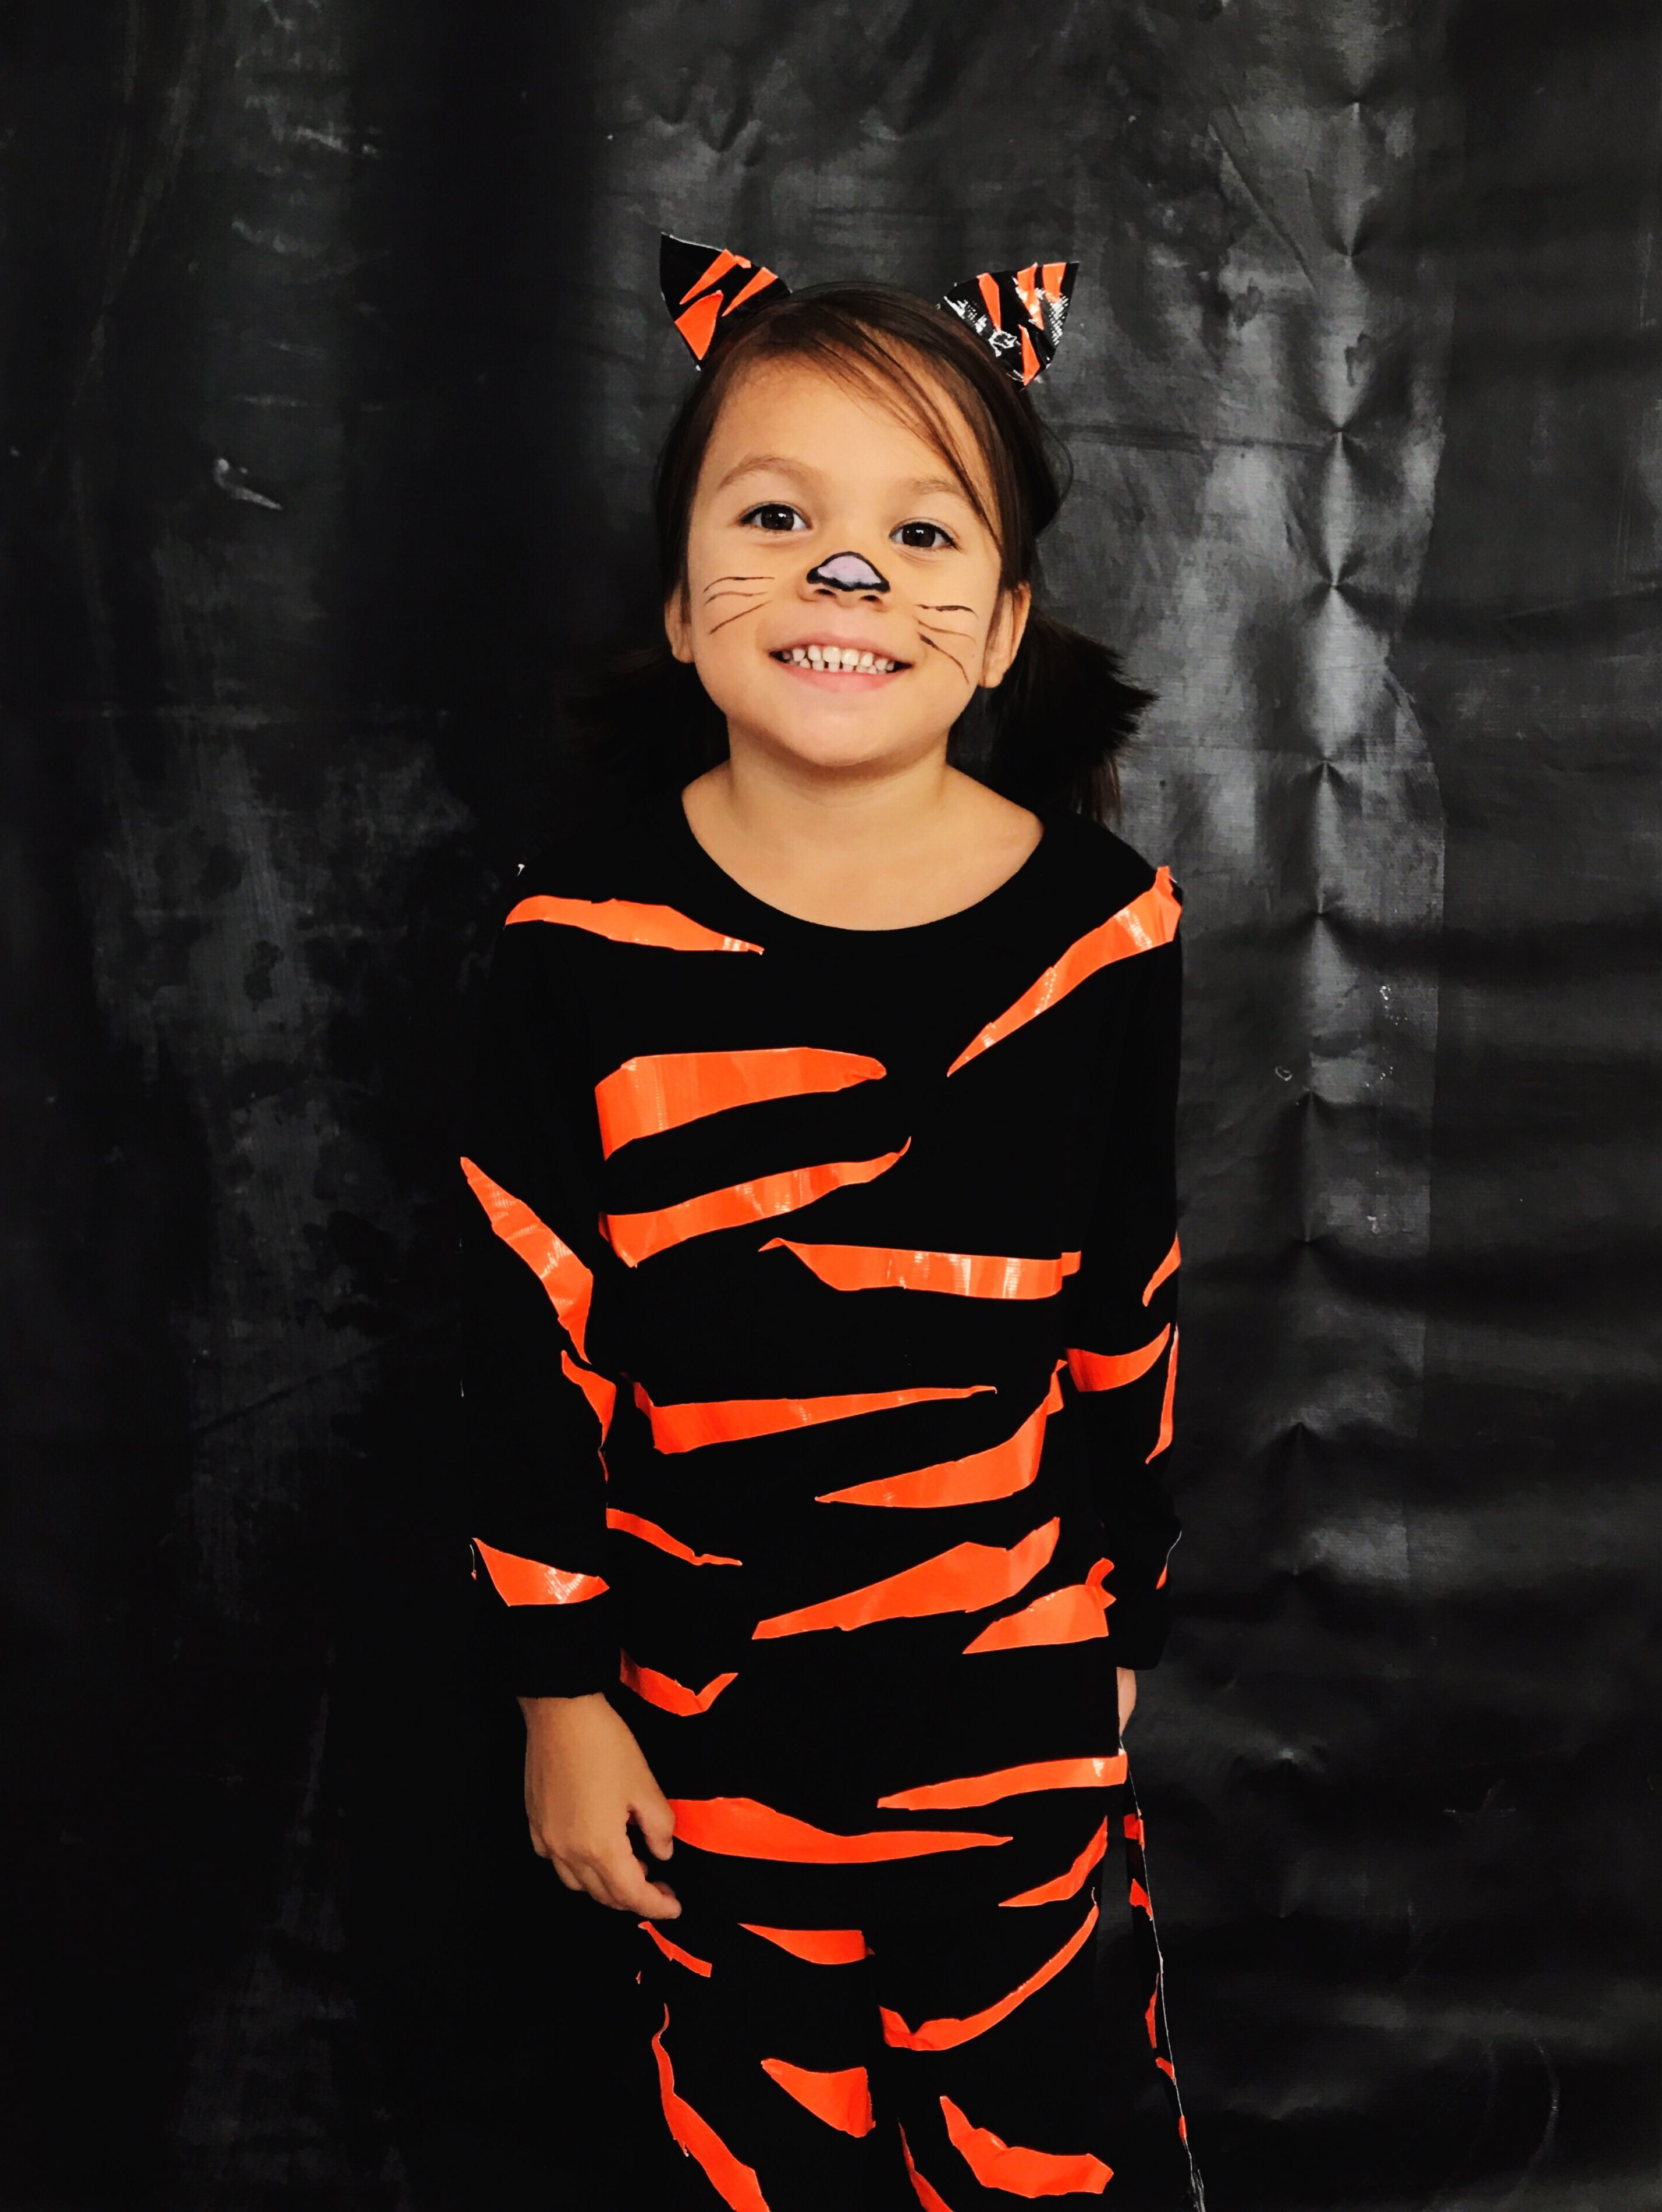 Diy Duct Tape Tiger Costume In 2019 Tiger Halloween